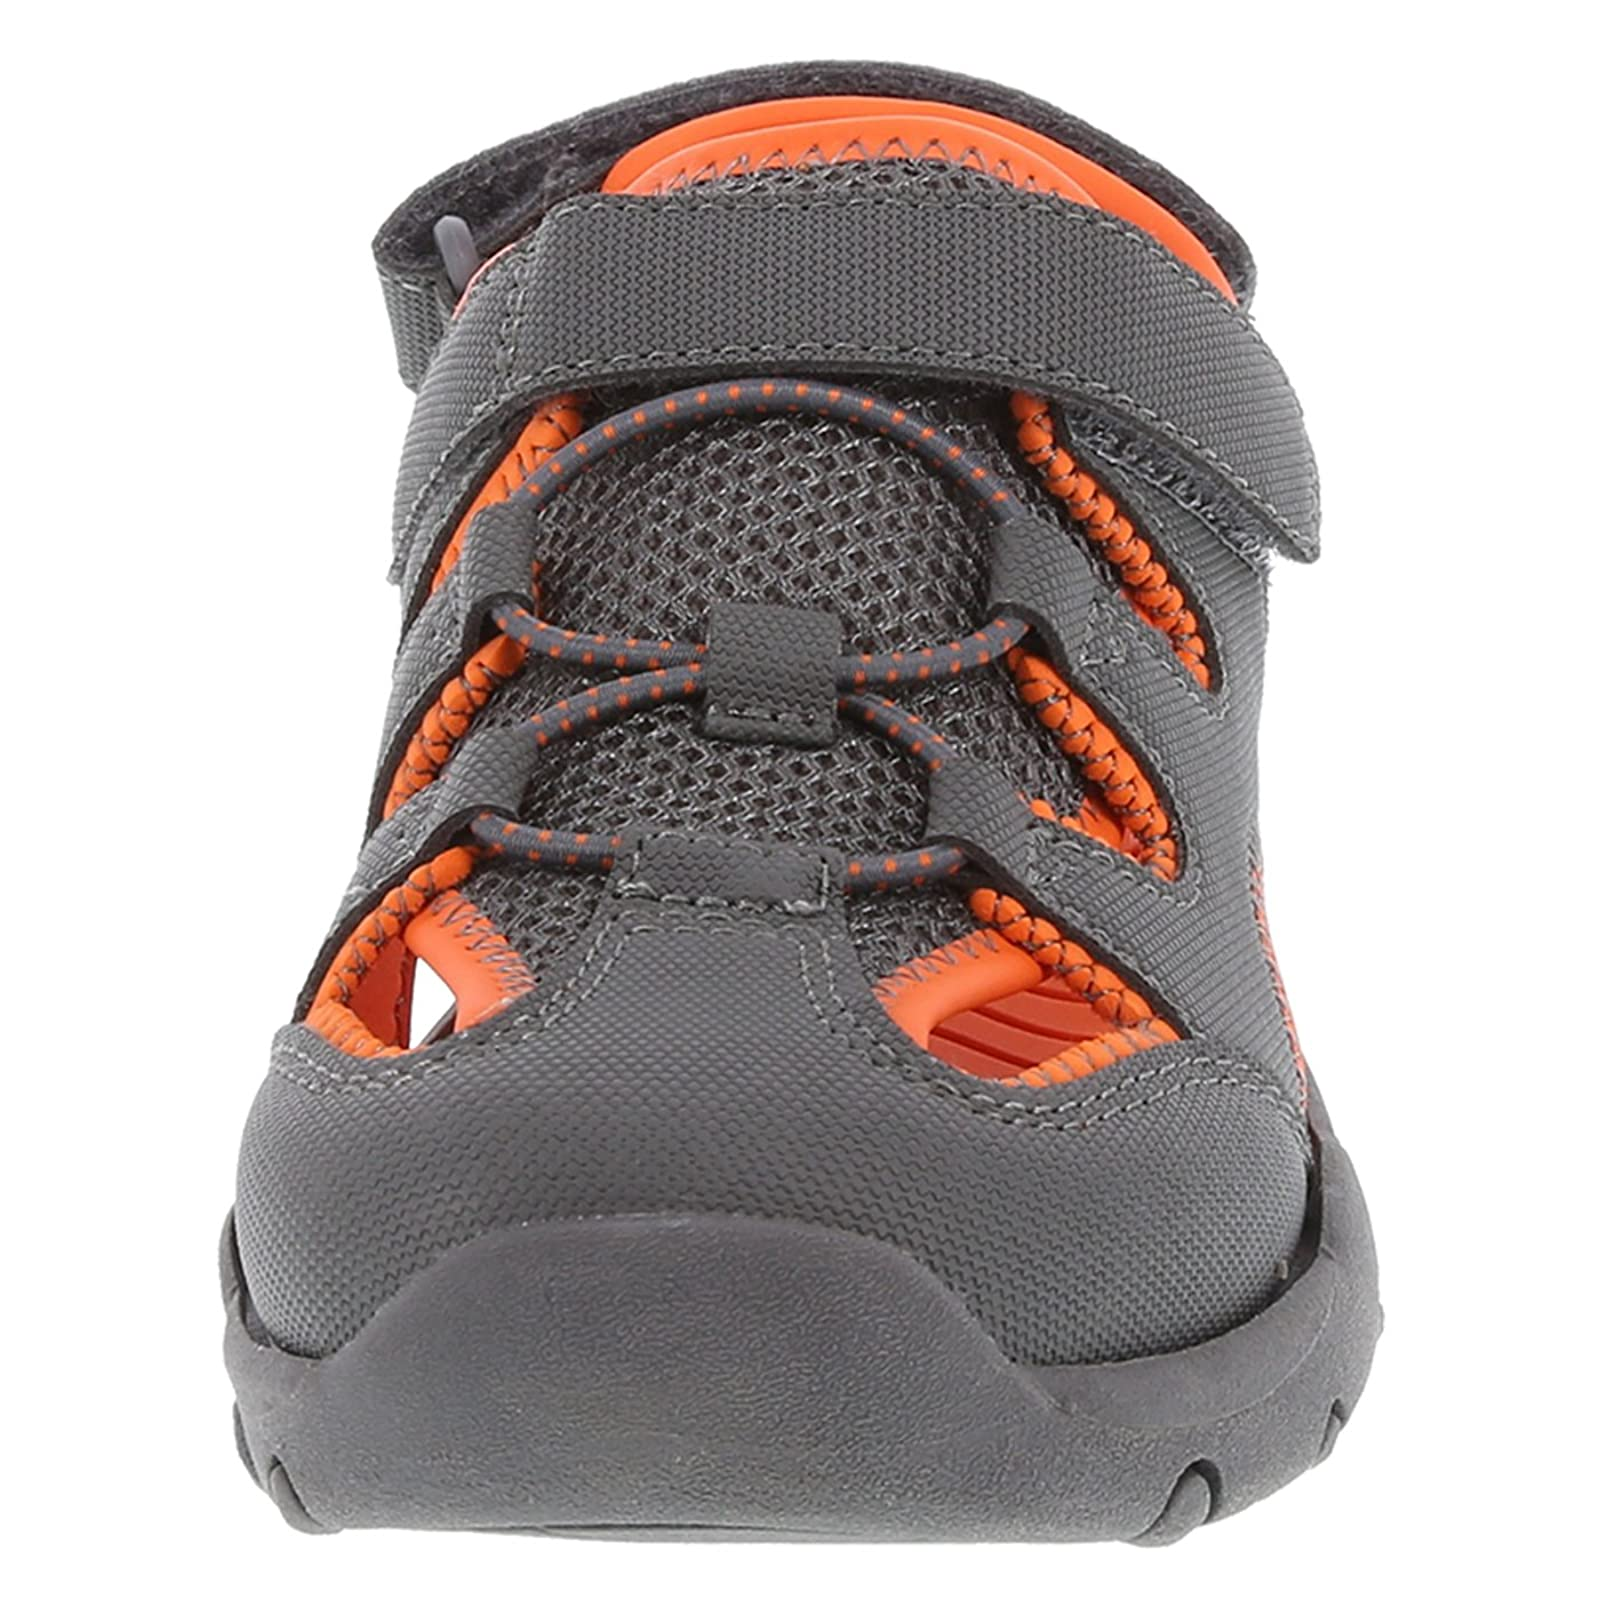 Rugged Outback Boy's Grey Orange Sport 173963130 Grey Orange - 3